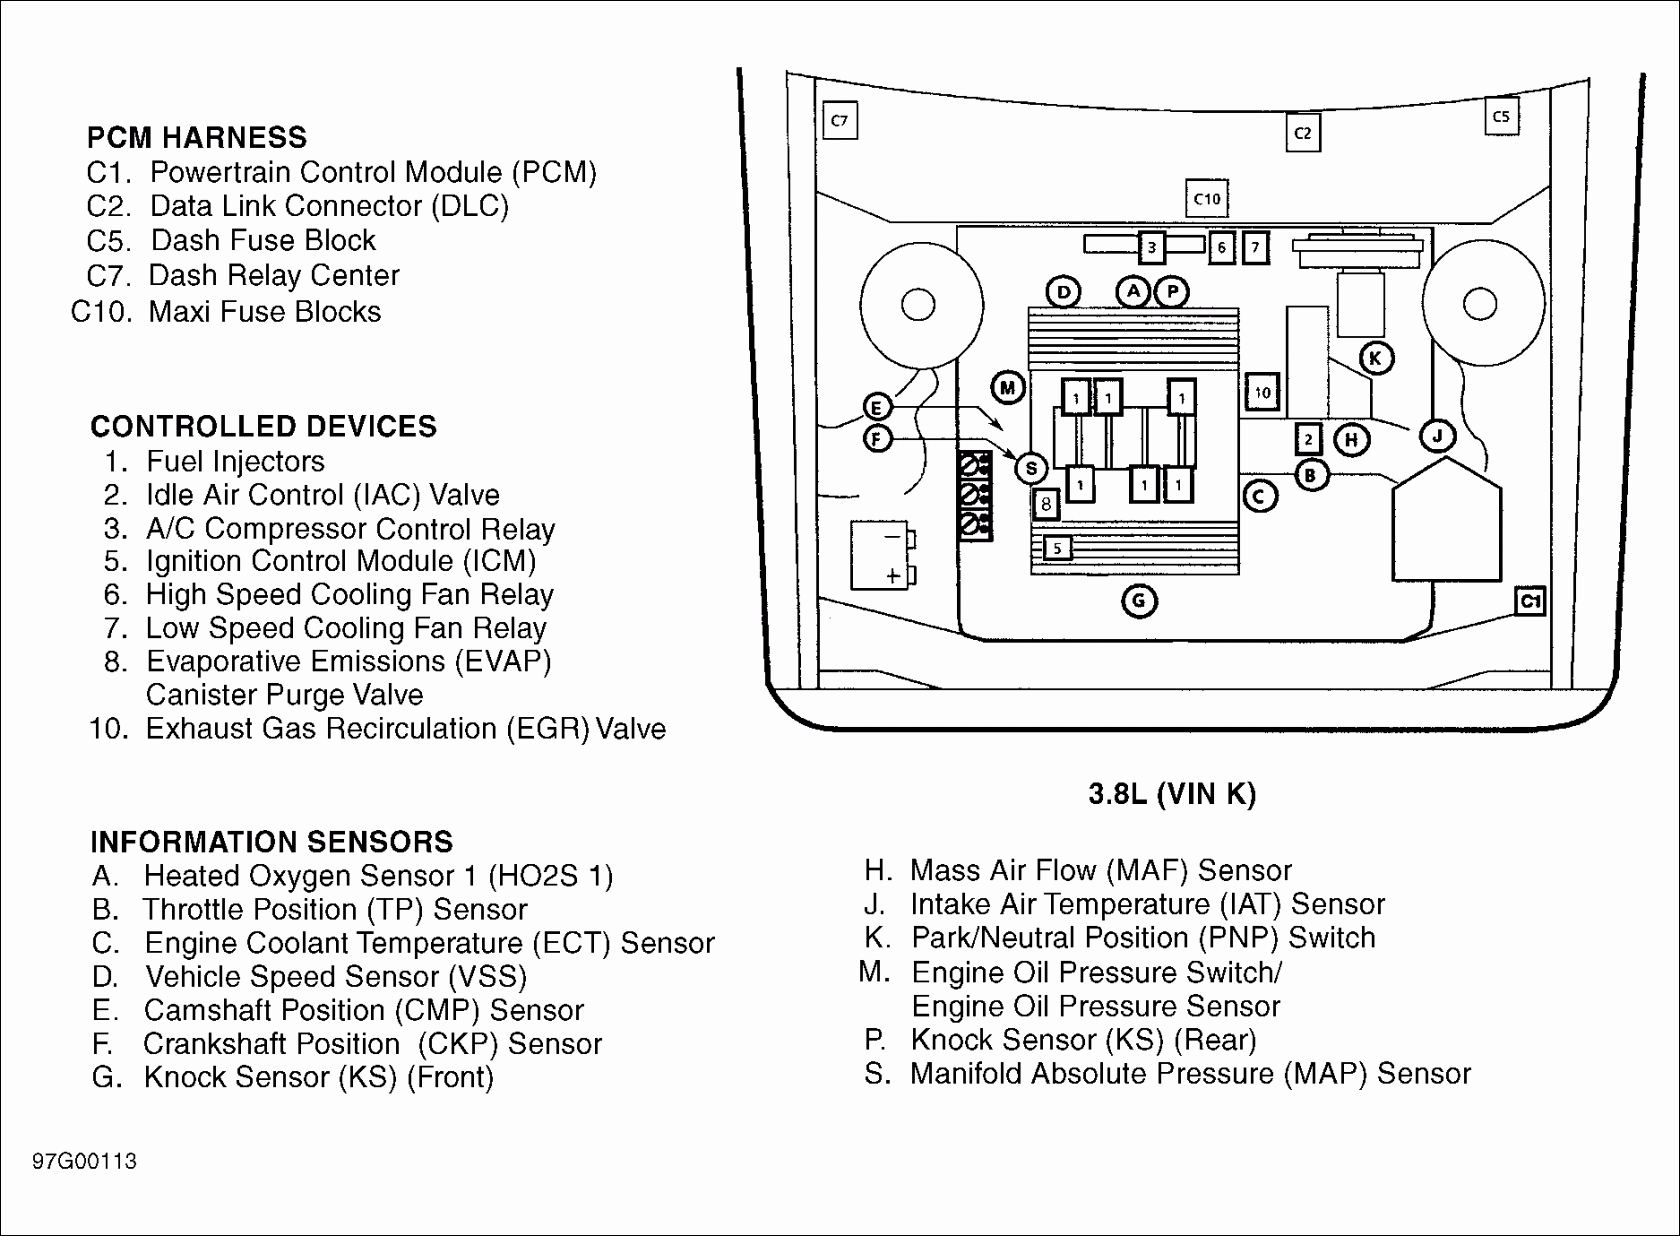 3 position ignition switch wiring diagram | free wiring ... 1997 buick lesabre ignition diagram 1997 buick lesabre 38l engine diagram